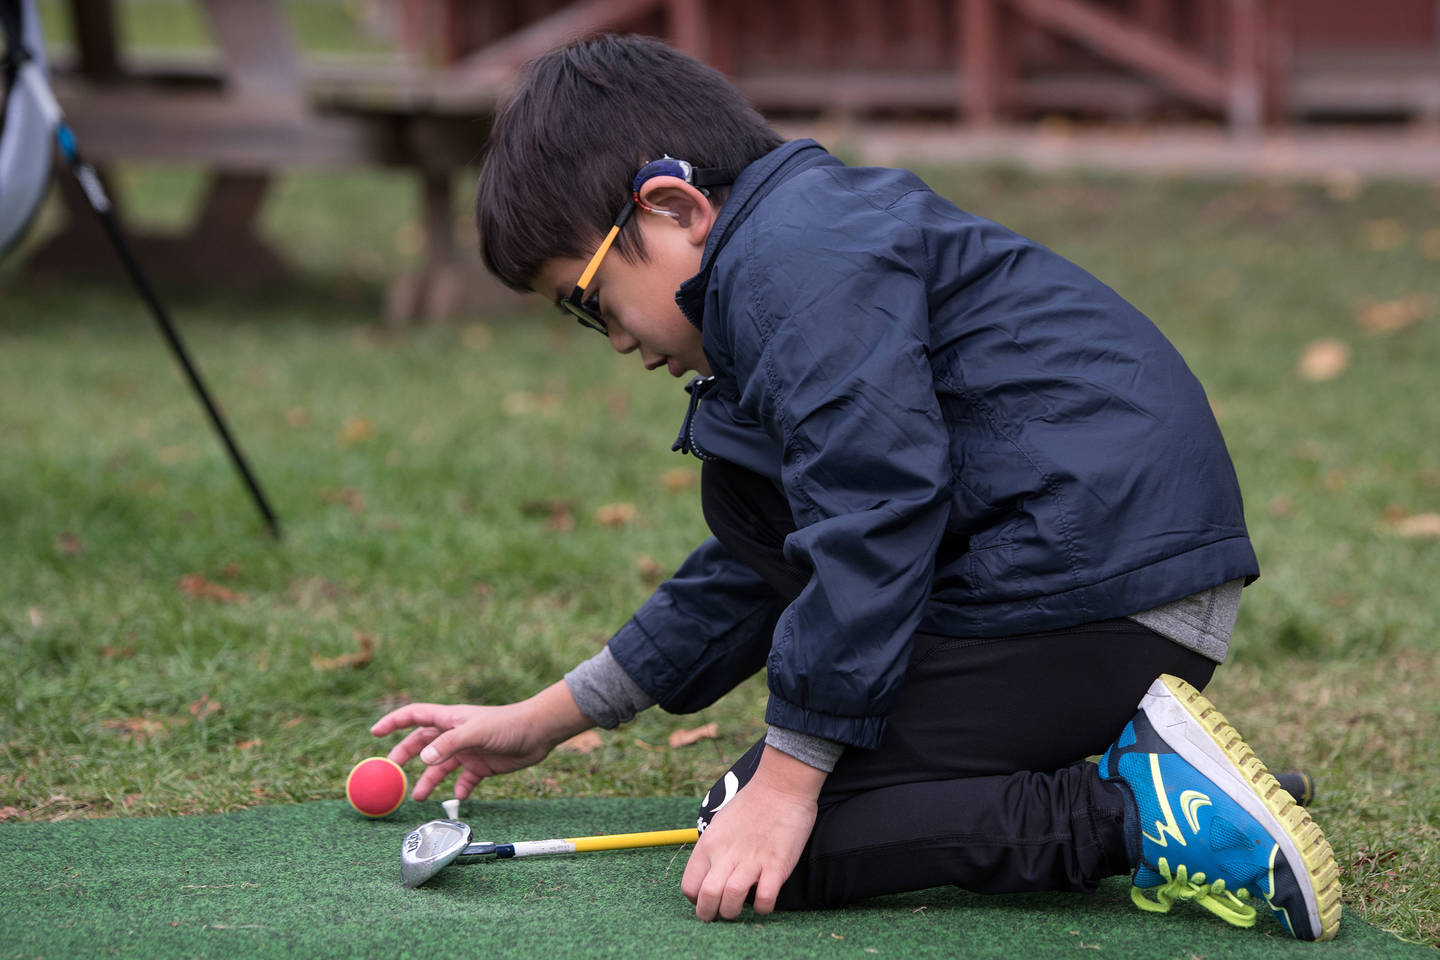 Young boy with hearing impairment putting golf ball on tee.